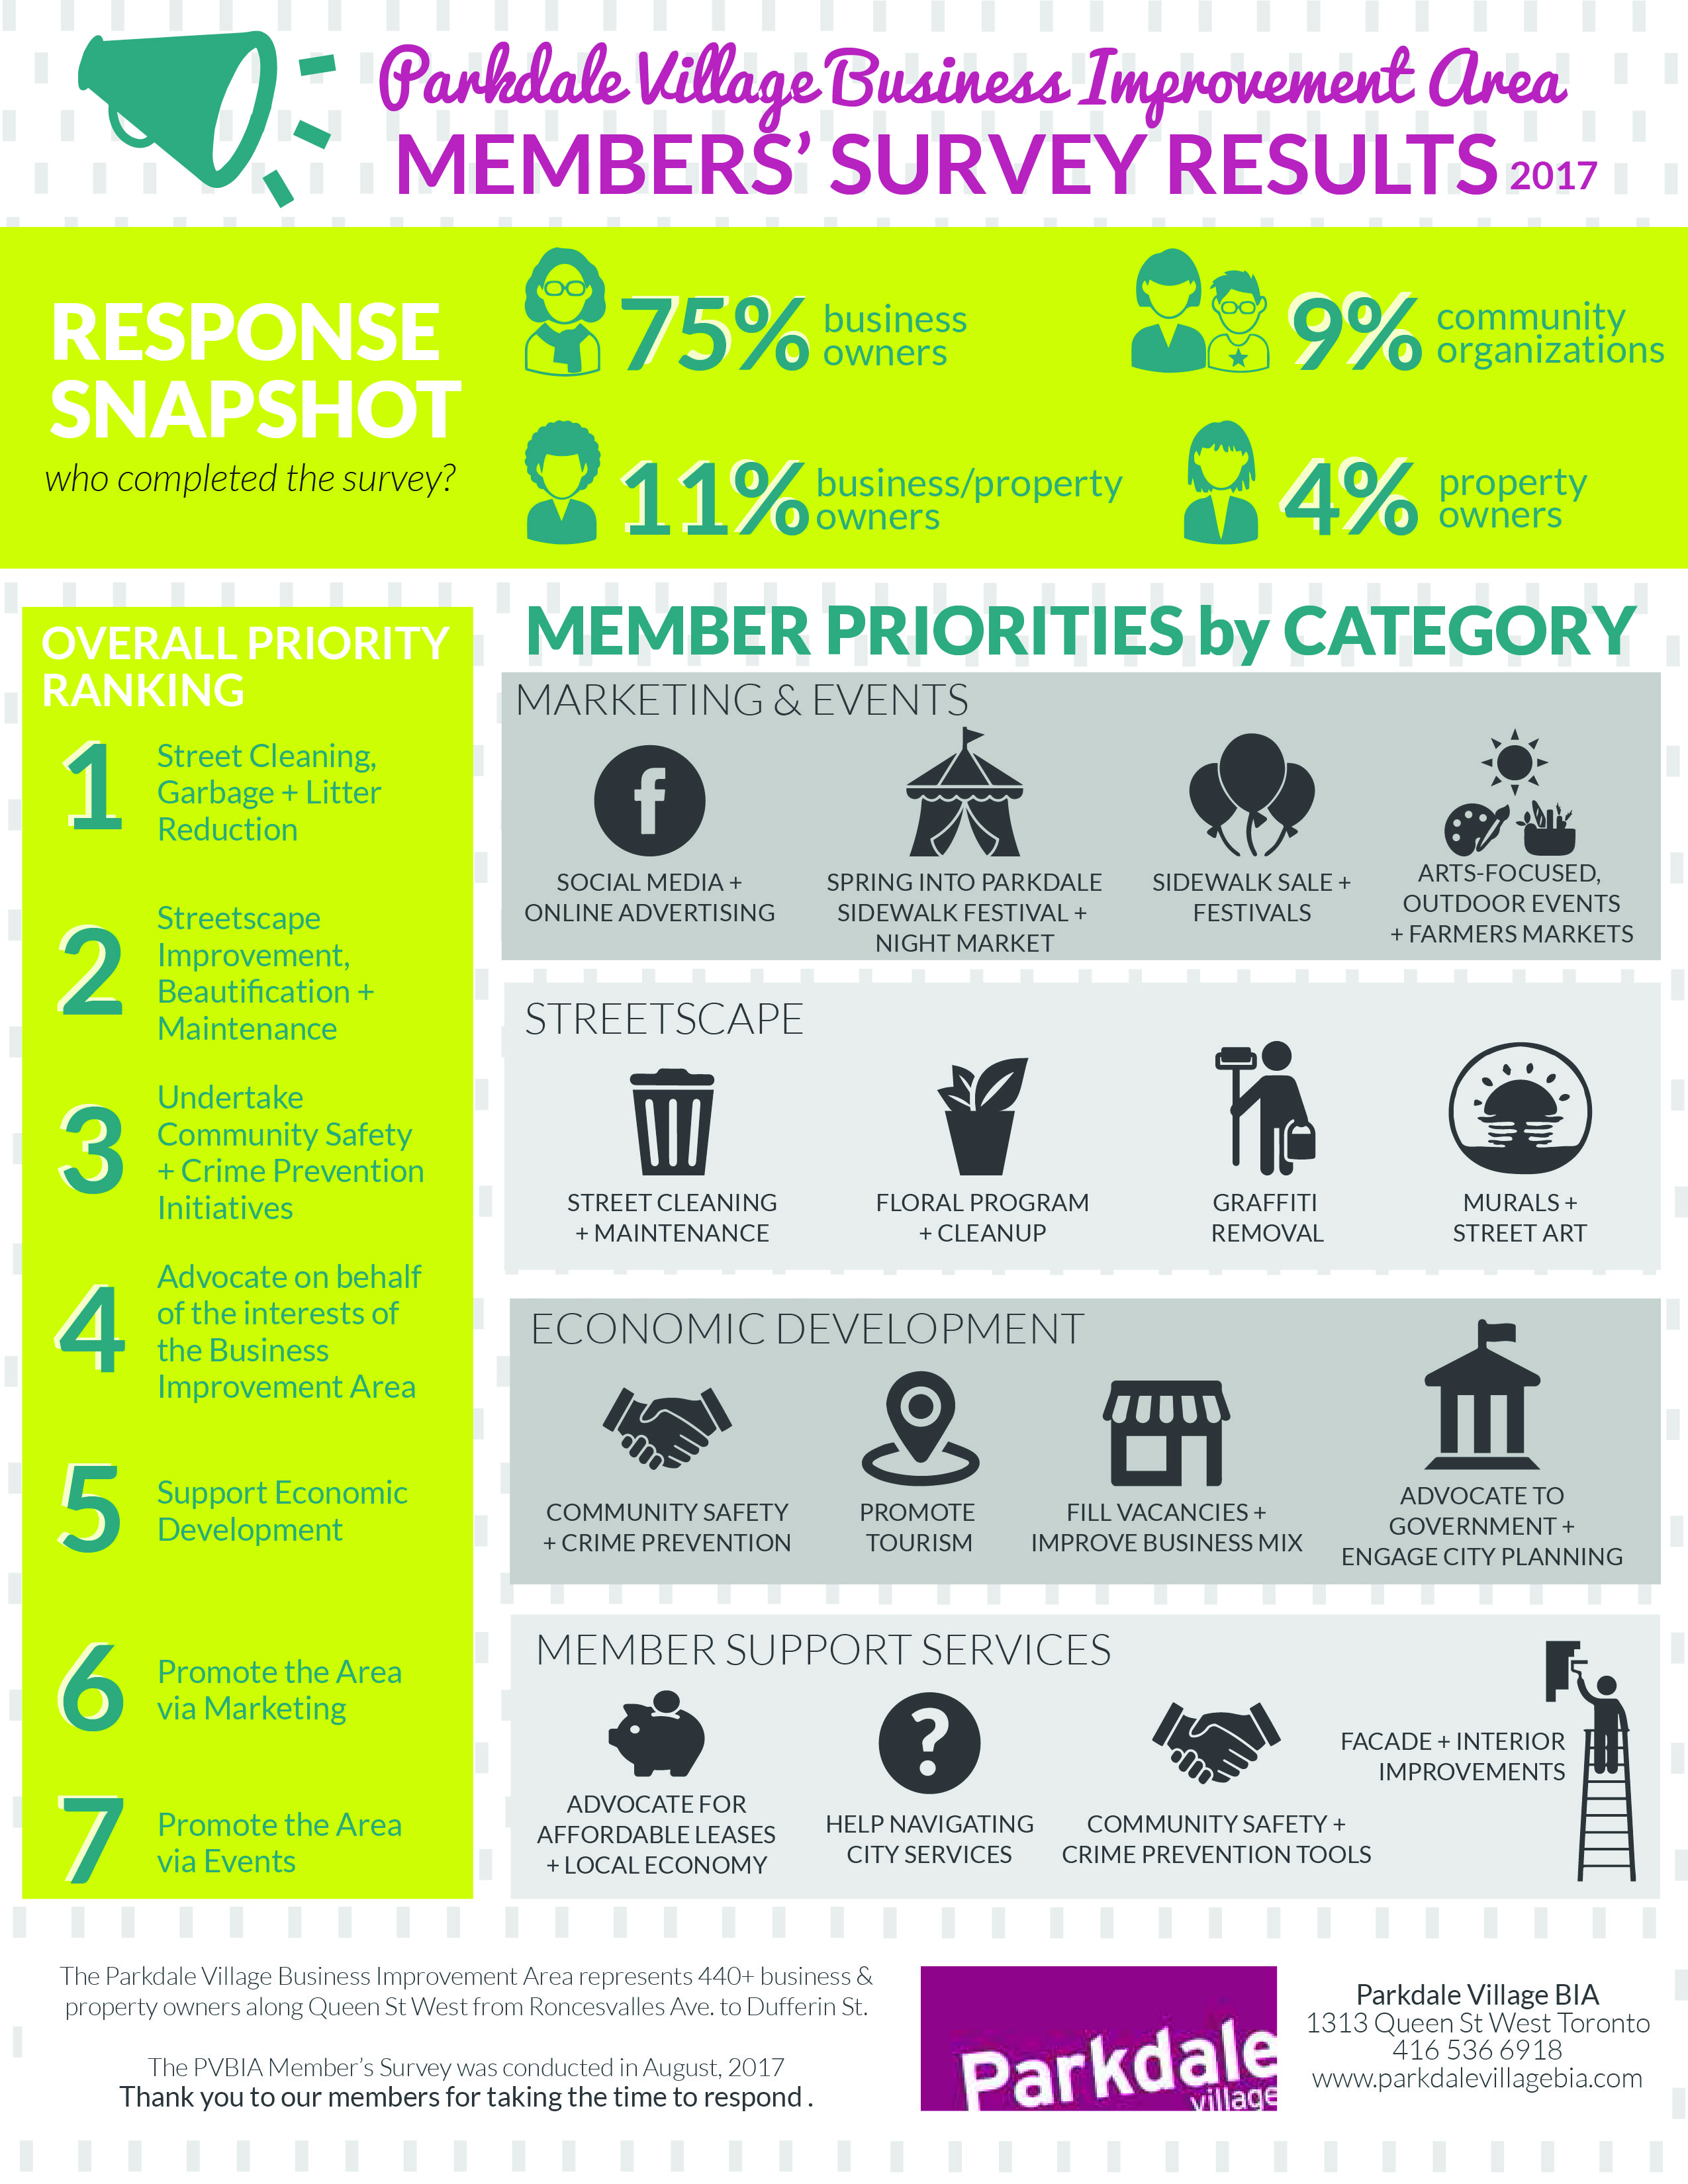 Business Survey Templates Survey Result Business Letters Sample PVBIA Survey  Results Infographic 1 Business Survey Templates